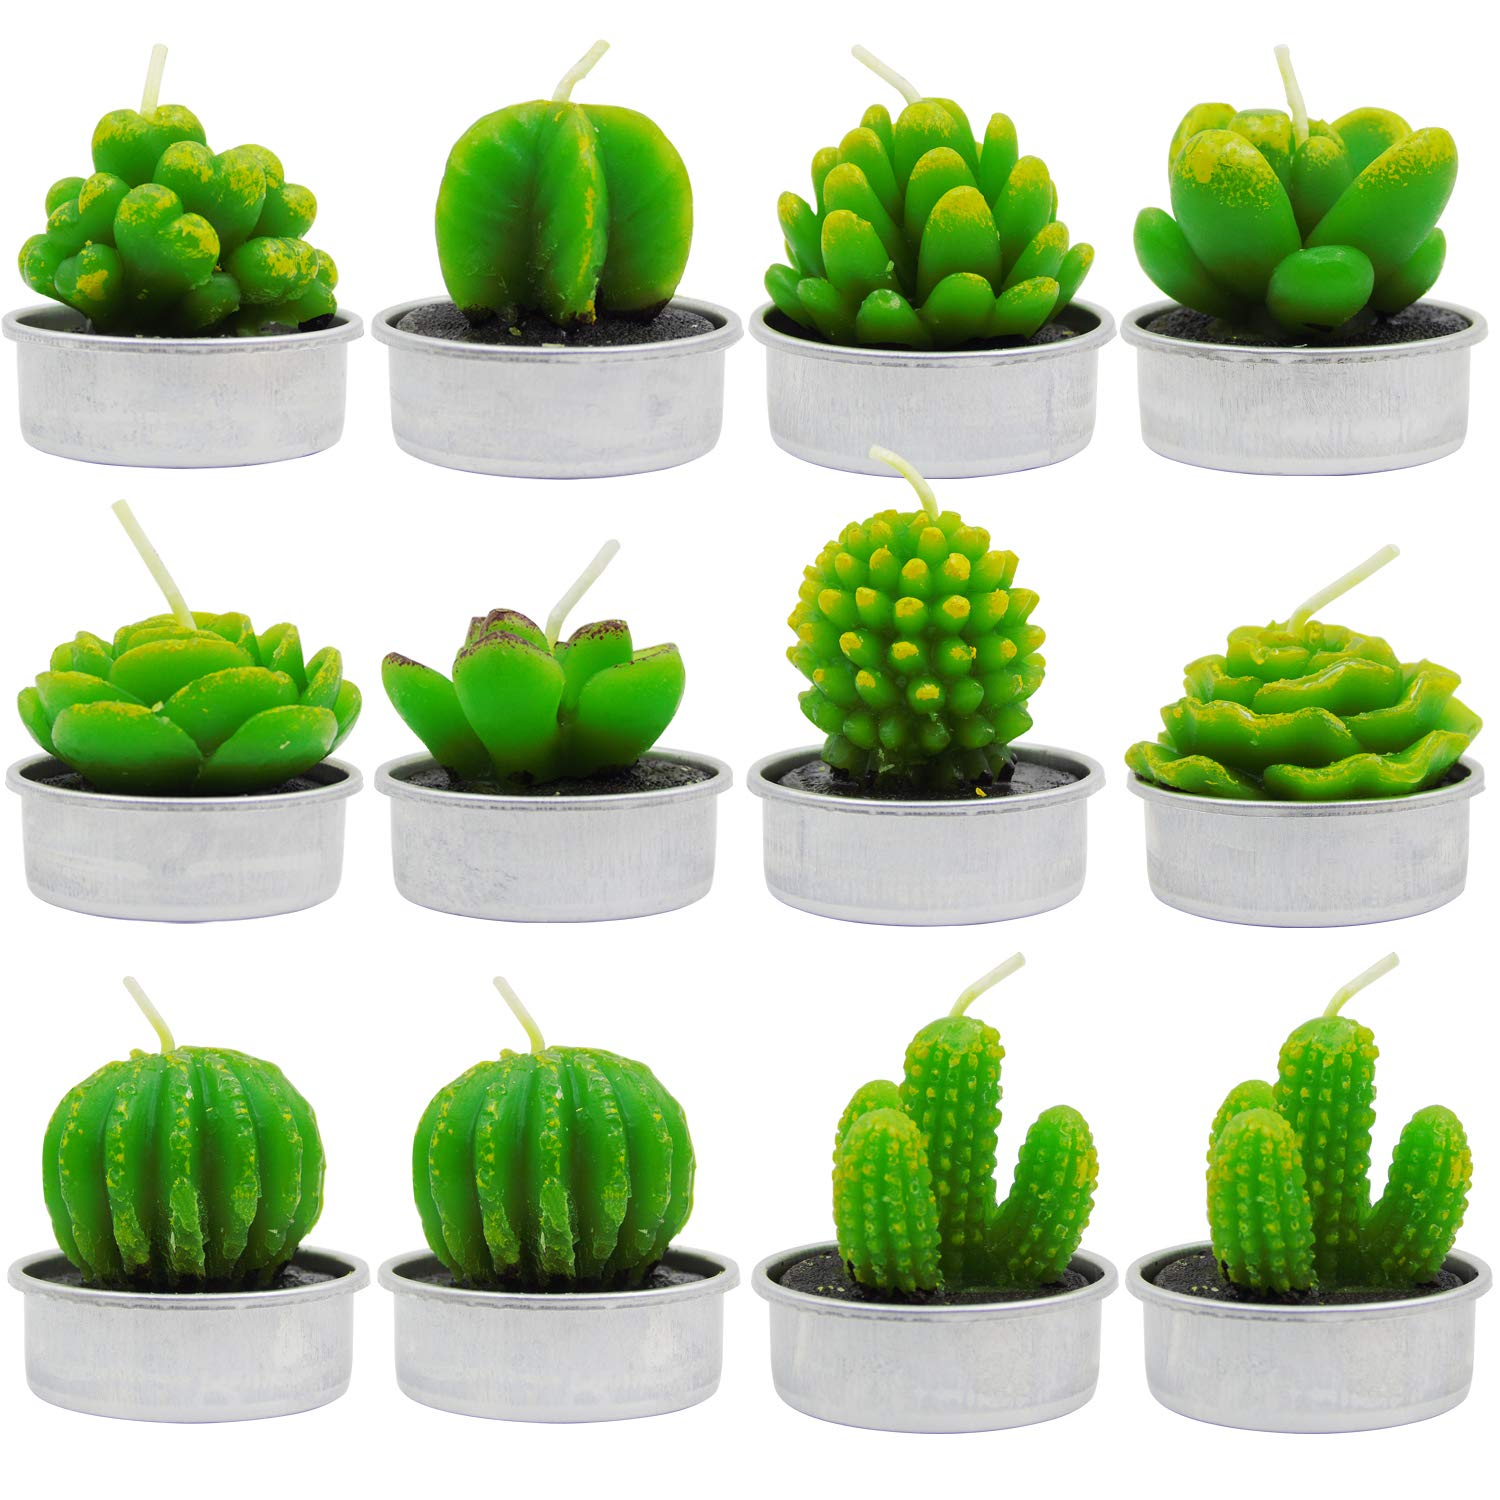 BTUTU 12pcs Cactus Tealight Candles Handmade Mini Succulent Cactus Candles for Party Favors, Home Decoration Valentine's Day Birthday Party Wedding Props